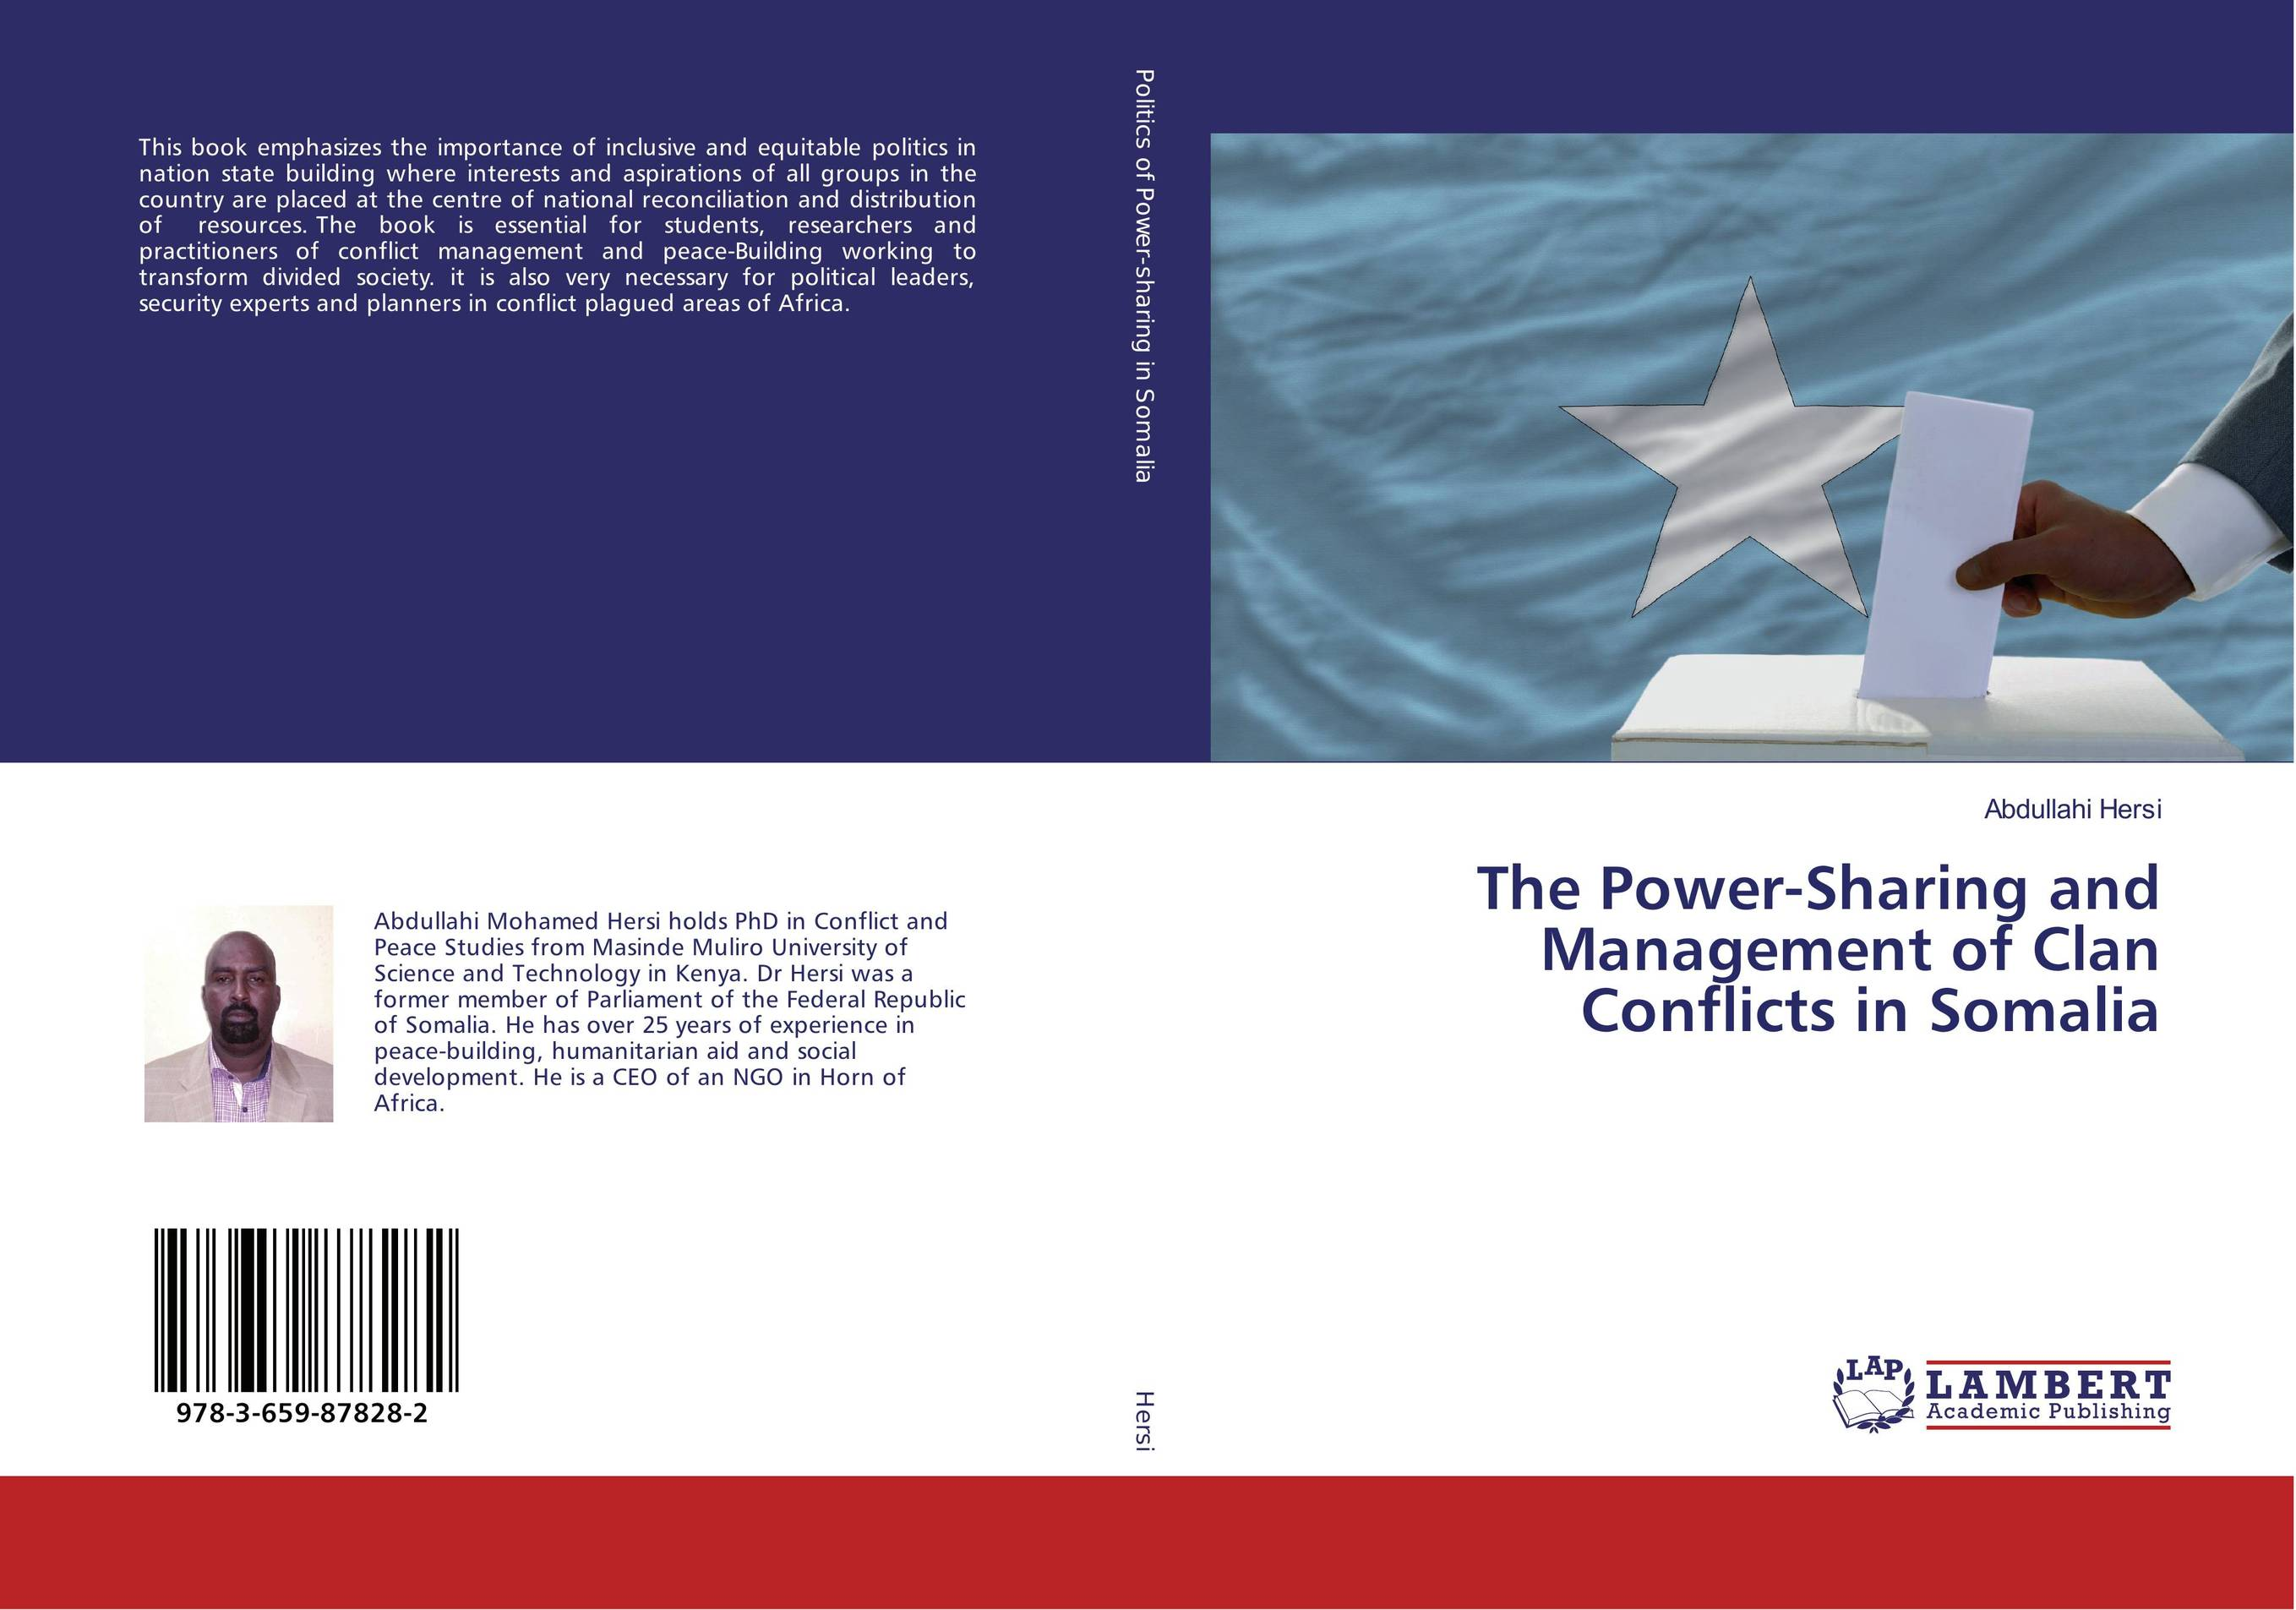 The Power-Sharing and Management of Clan Conflicts in Somalia muhammad kabir isa the state and management of ethnic conflicts in nigeria